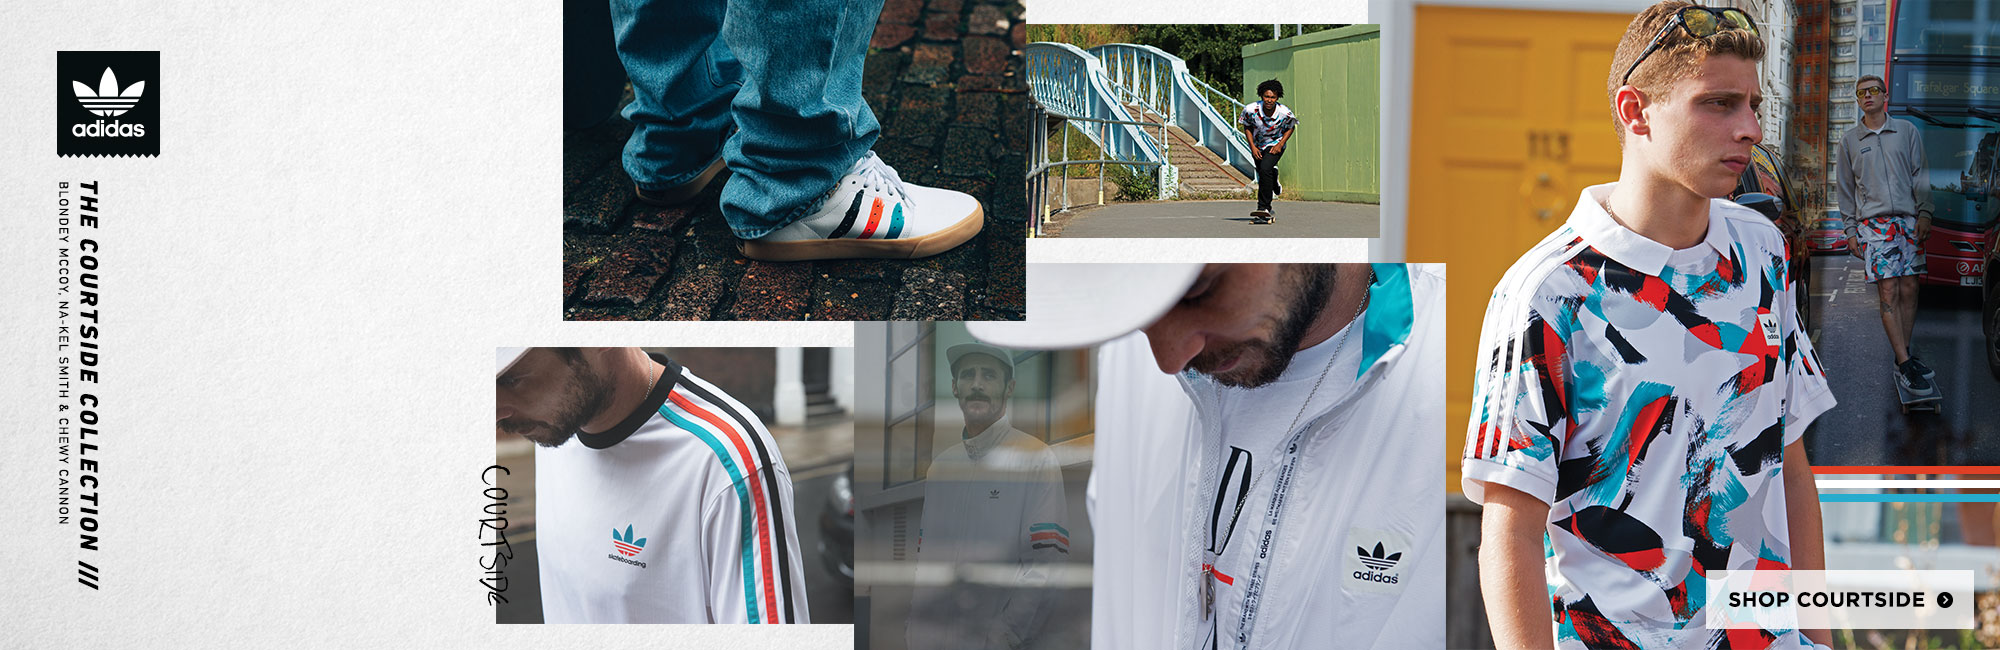 Adidas Courtside Collection